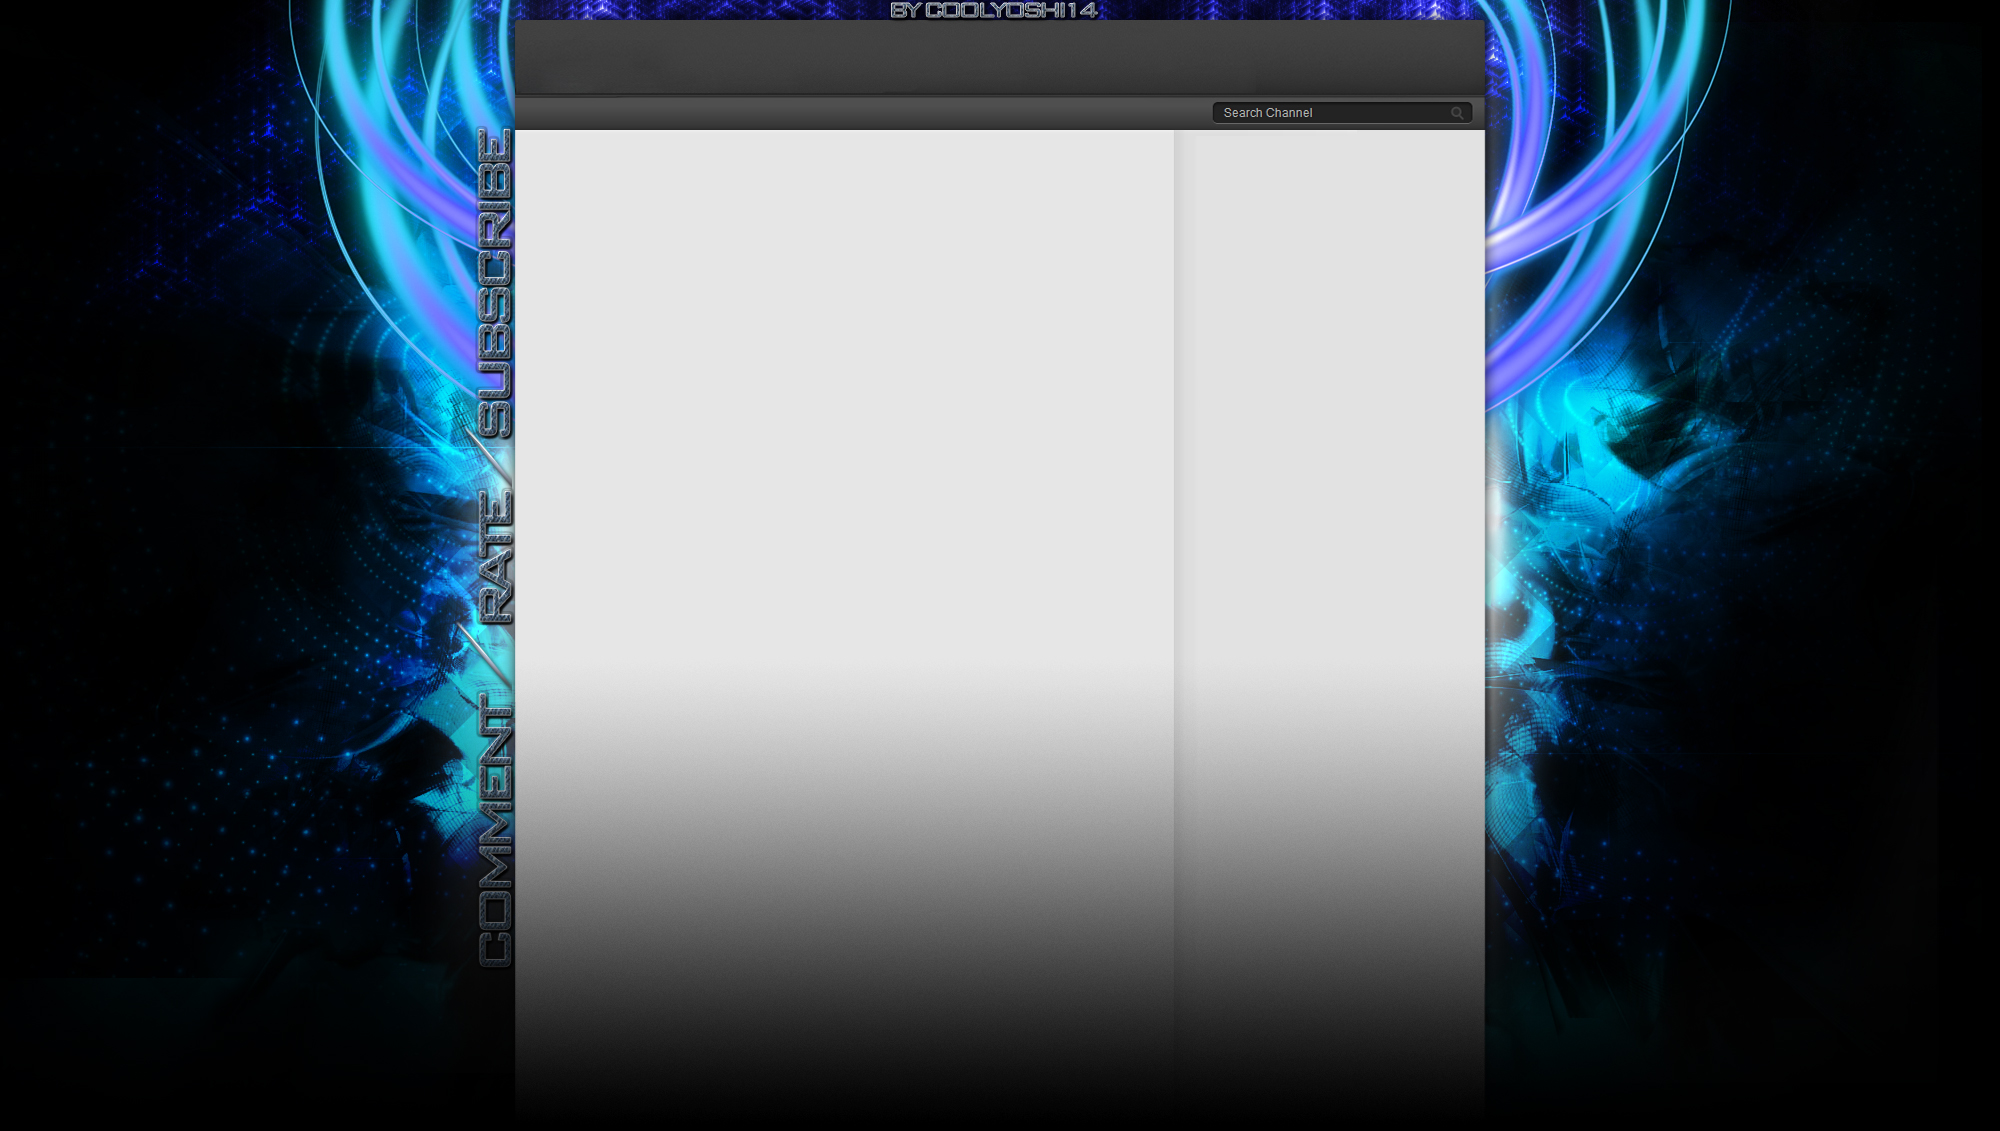 new youtube channel design background by coolyoshi12 on